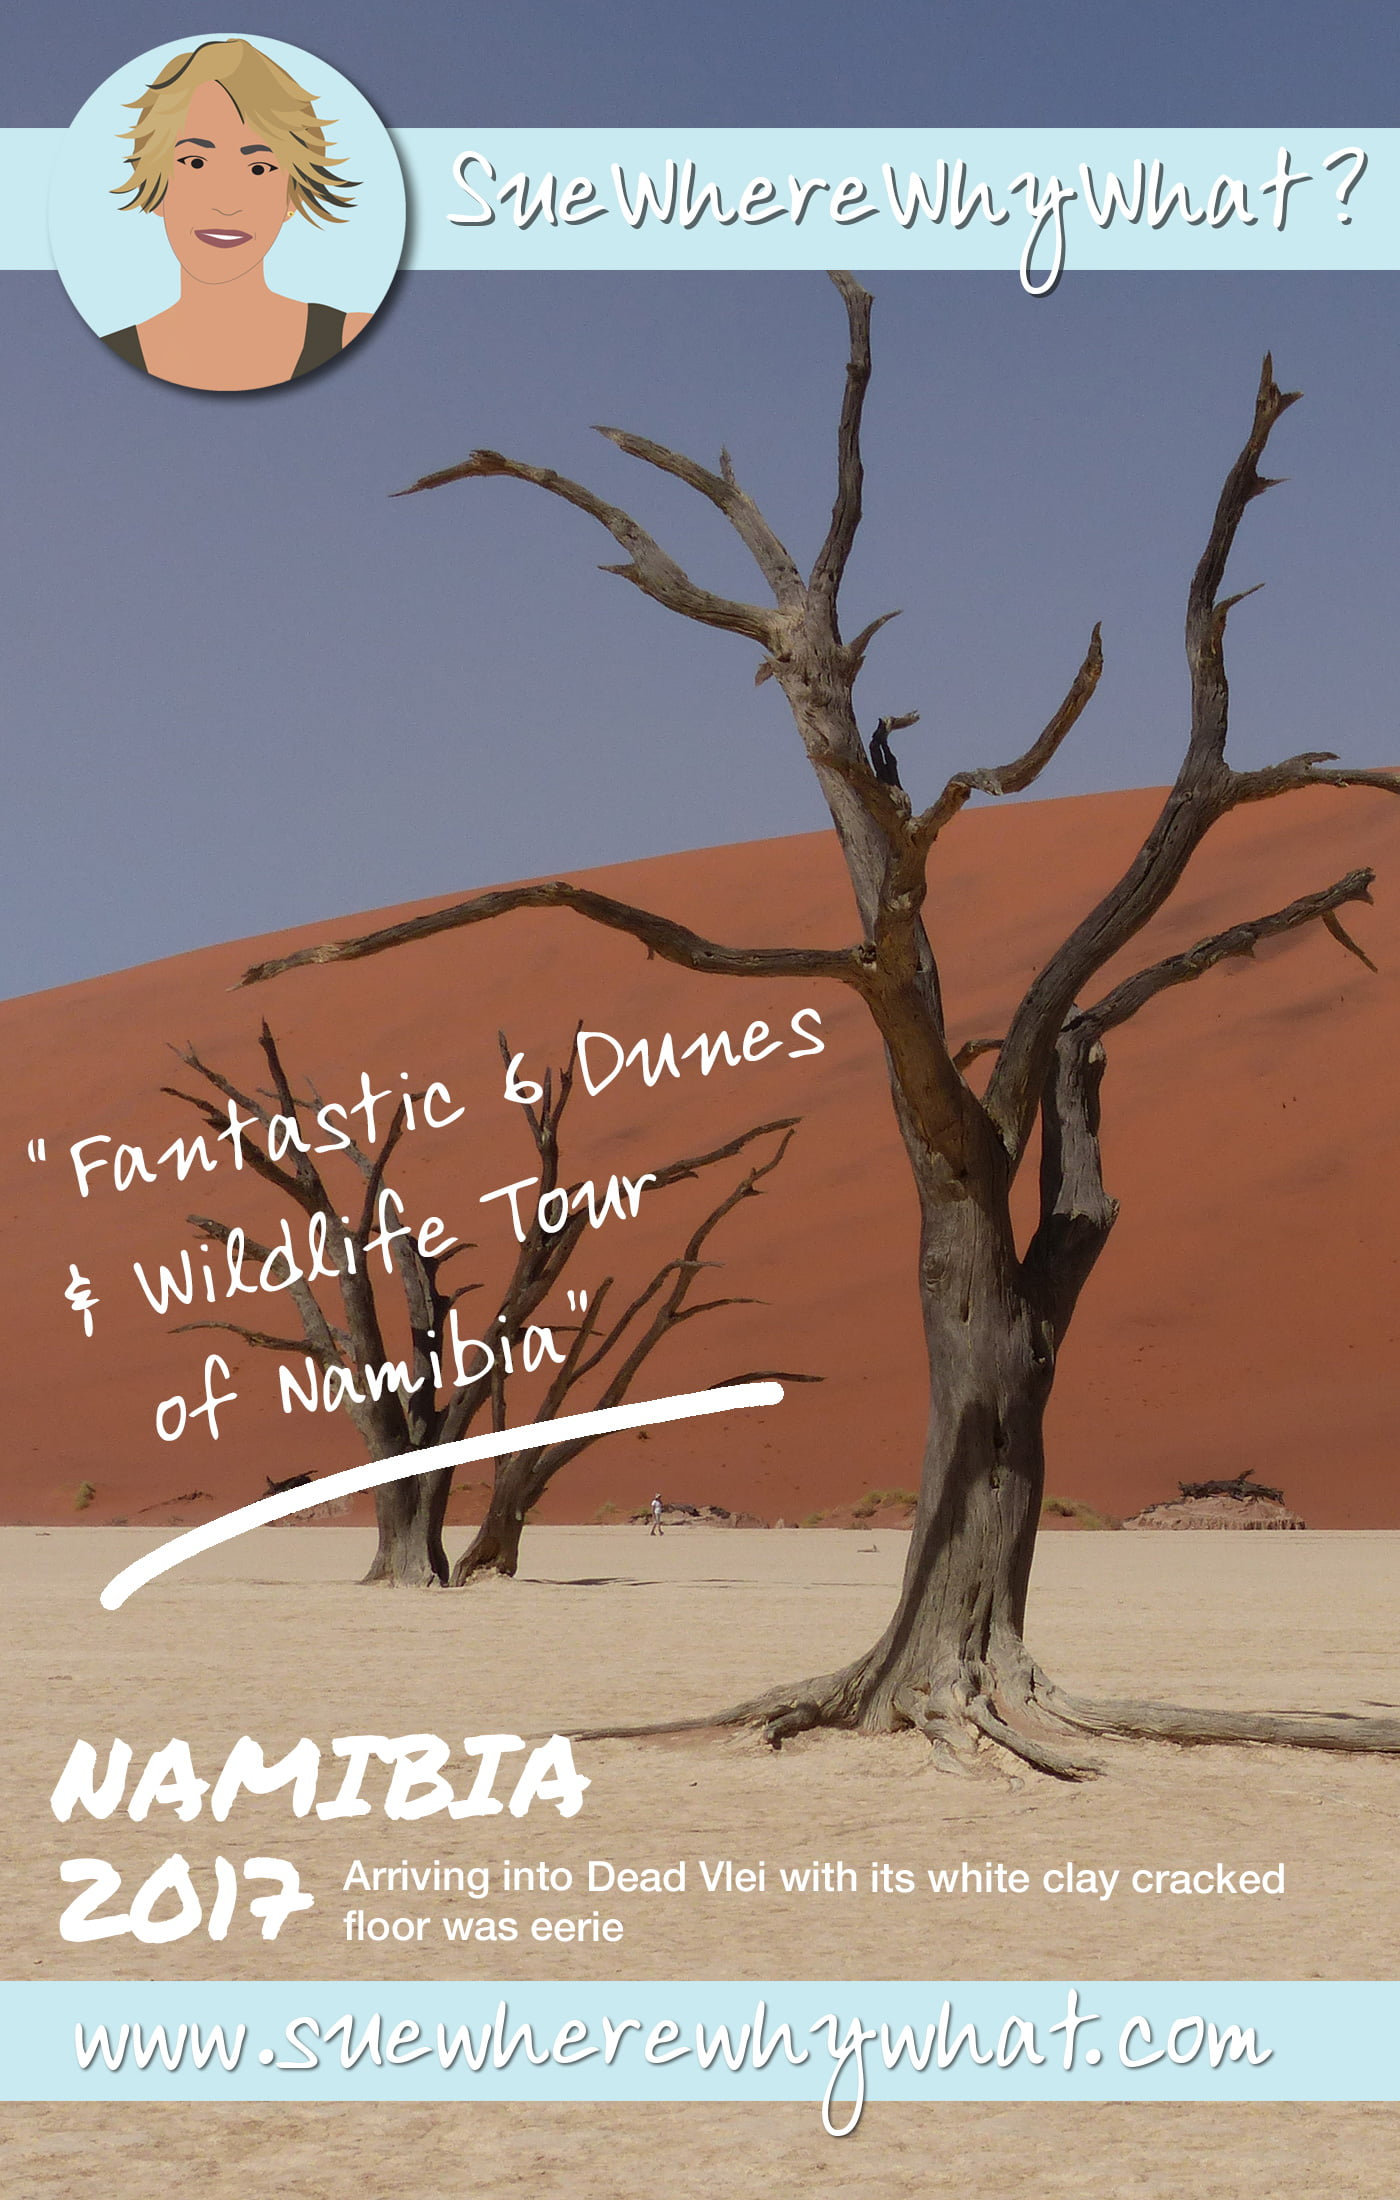 Fantastic 6 Dunes & Wildlife Tour of Namibia. My top tips of the best places in Namibia. Includes the wildlife of Etosha National Park, the Sand Dunes of Sossusvlei, Skeleton Coast. Starting & finishing in Windhoek. https://www.suewherewhywhat.com/destinations/africa/fantastic-6-dunes-wildlife-tour-of-namibia